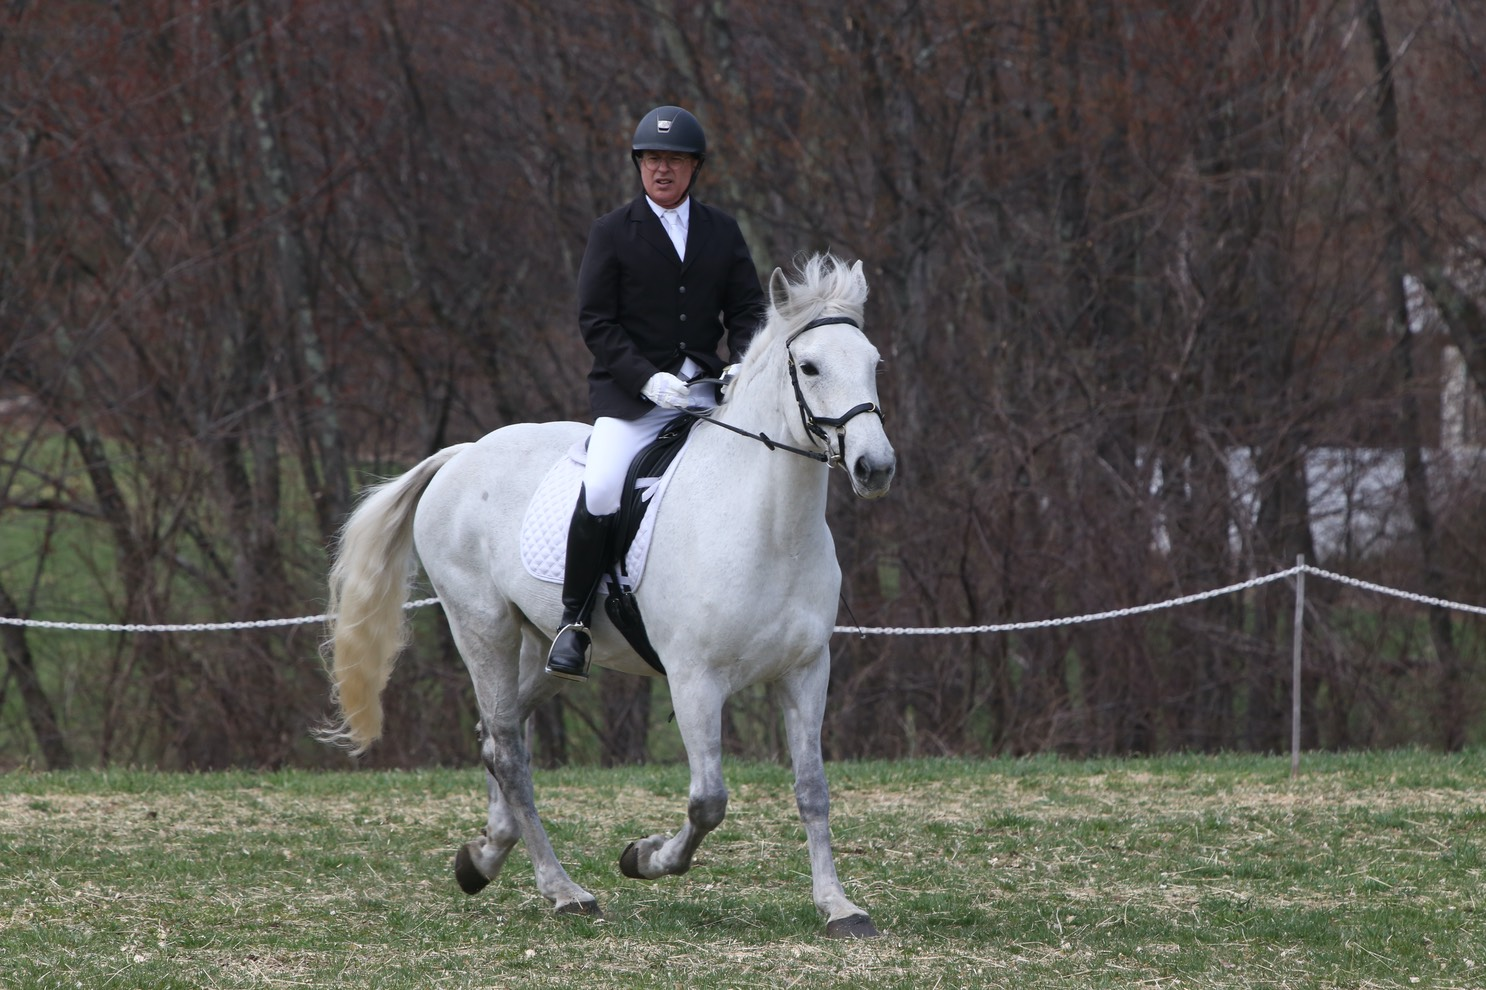 Dressage and Learning | Professor Lipshaw